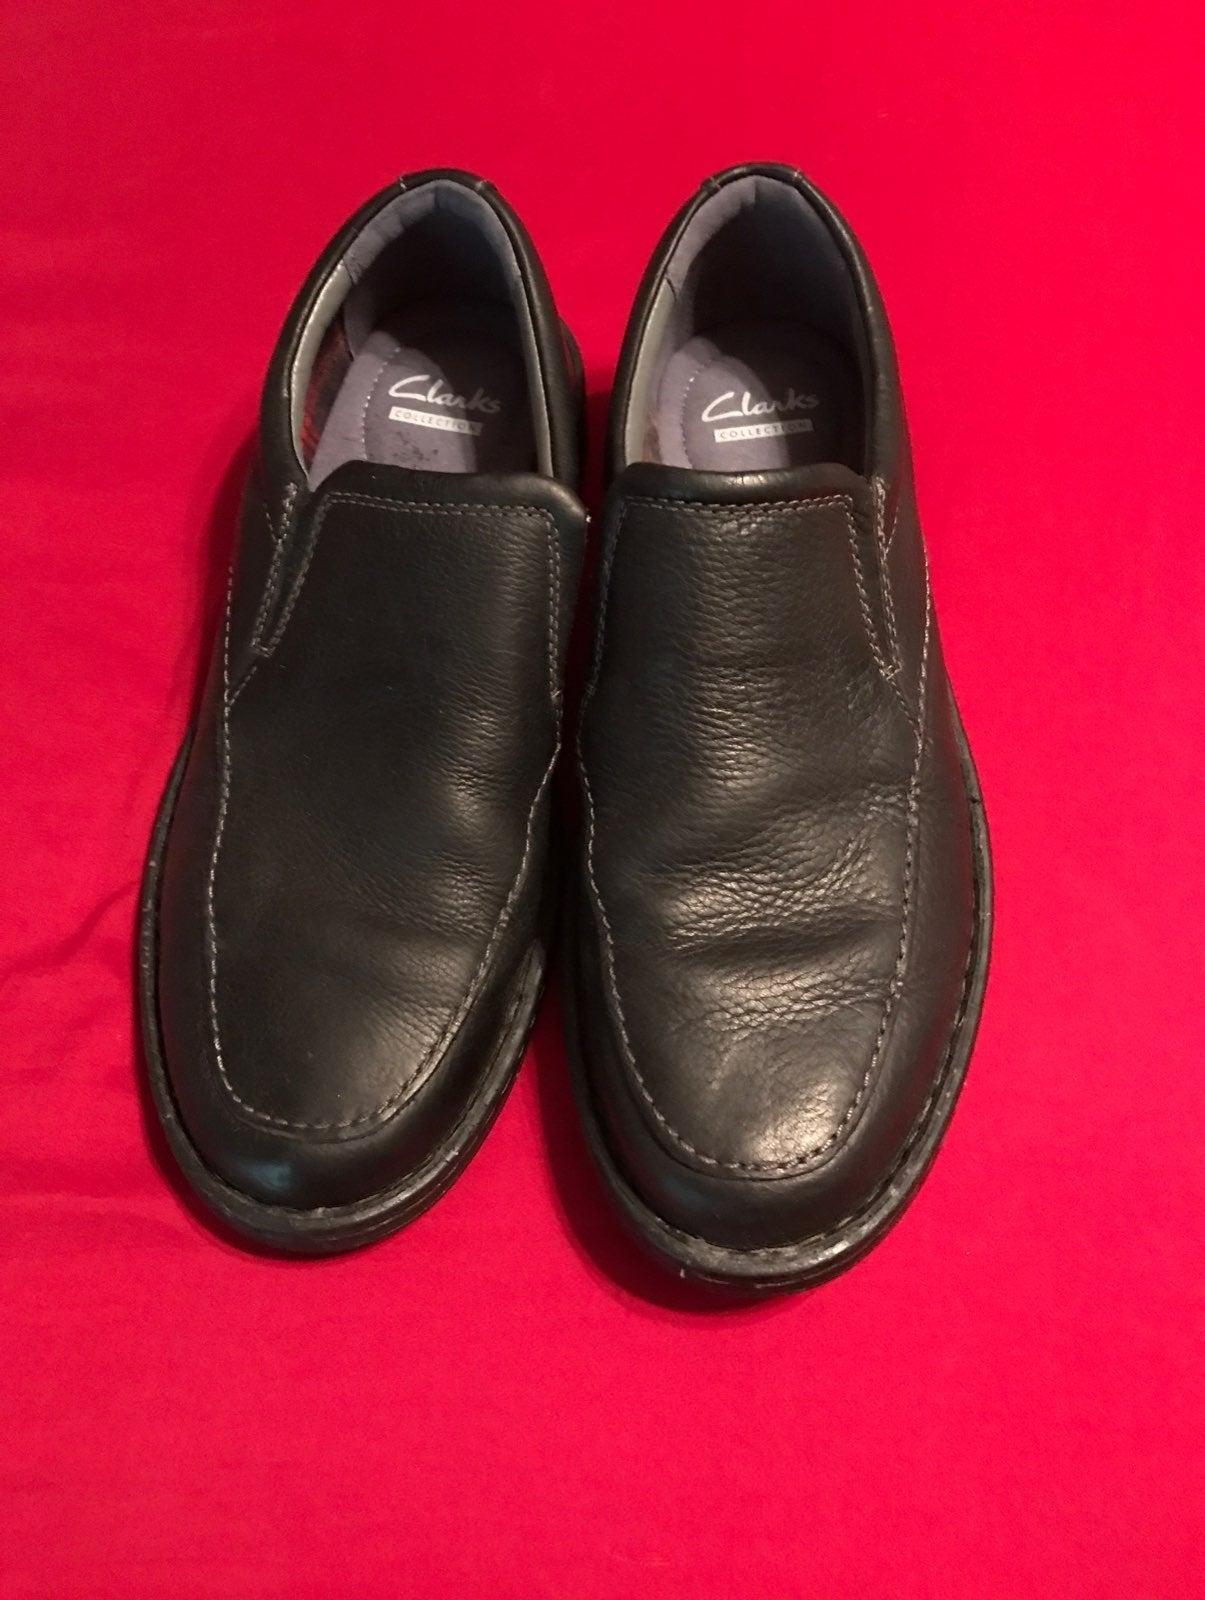 Clarks shoes 9.5